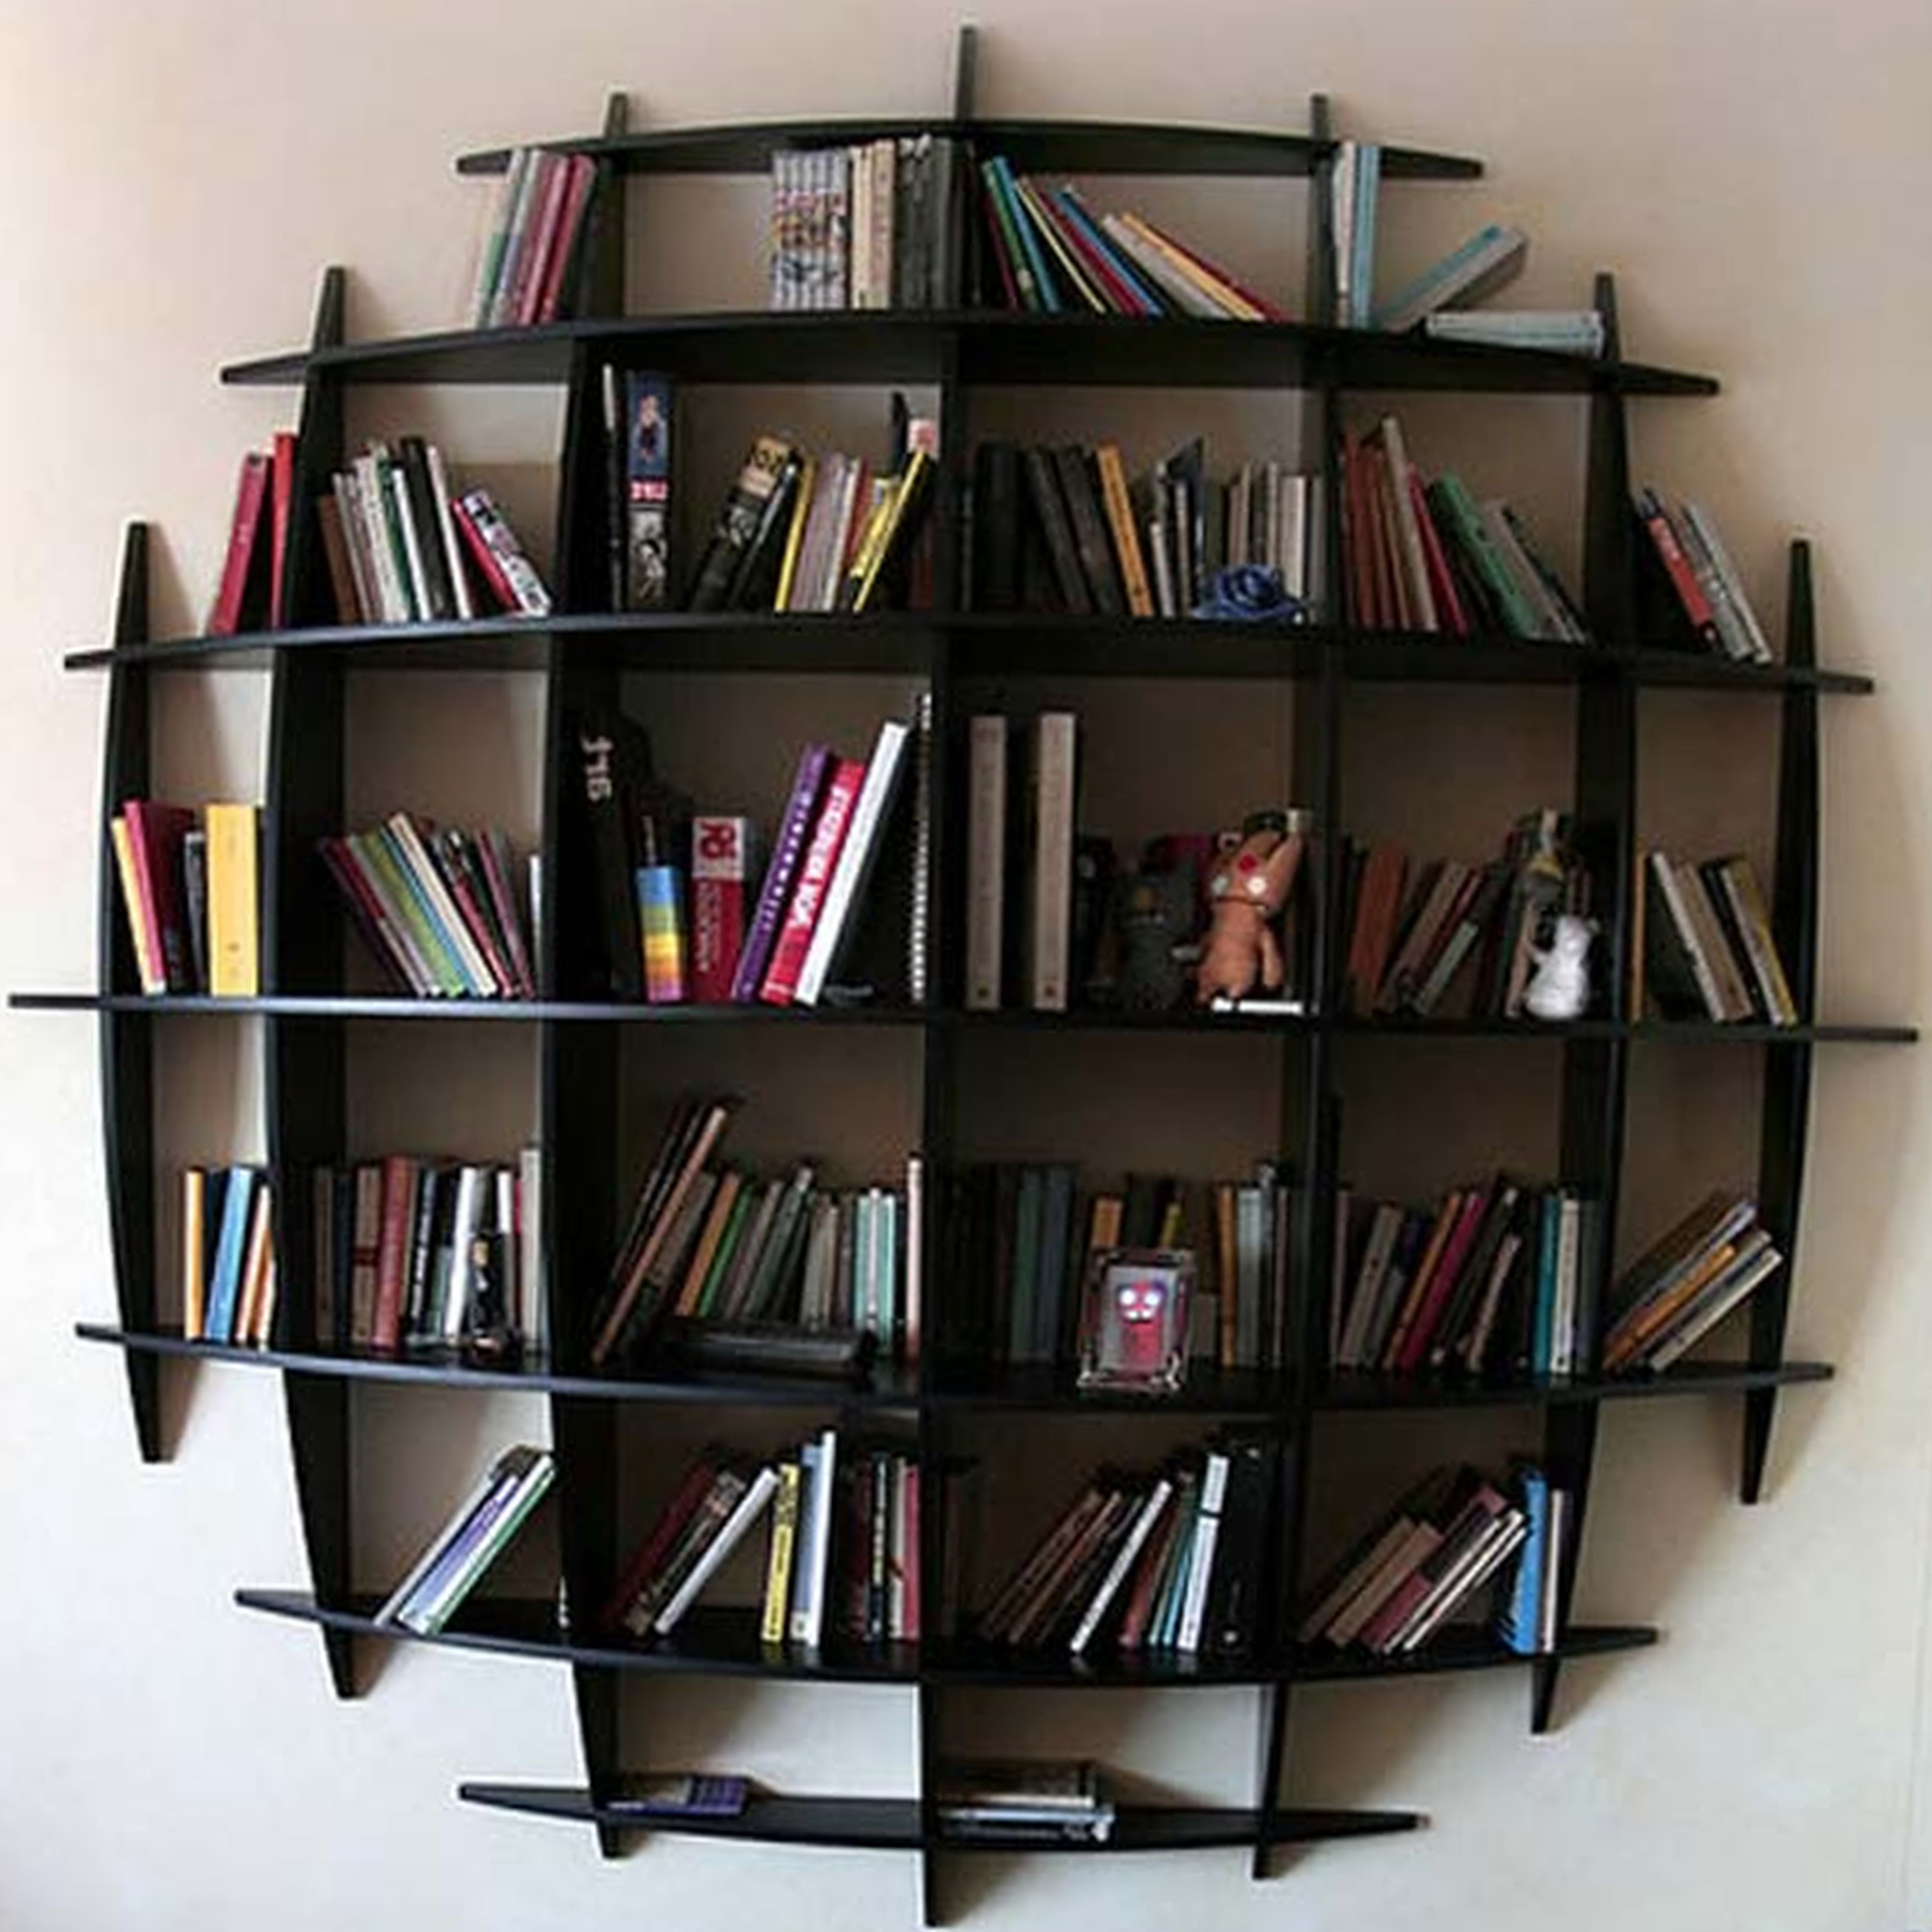 Genial Round Shaped Black Wall Mounted Bookshelves Completed With Various Books On  White Wall